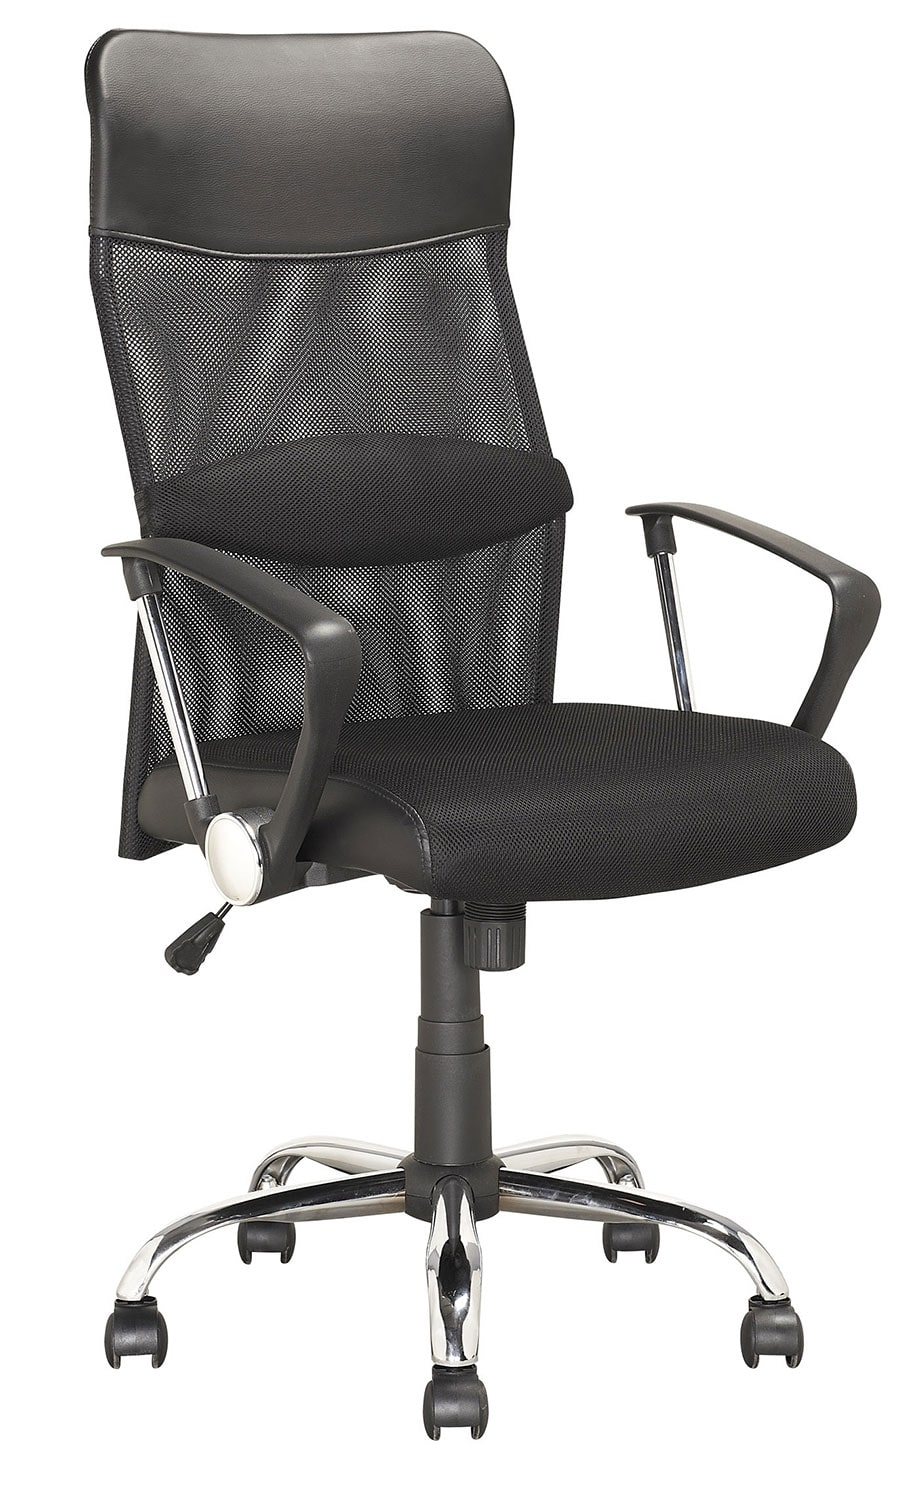 Fontana Foam-Padded Leatherette and Soft Fabric Executive Office Chair